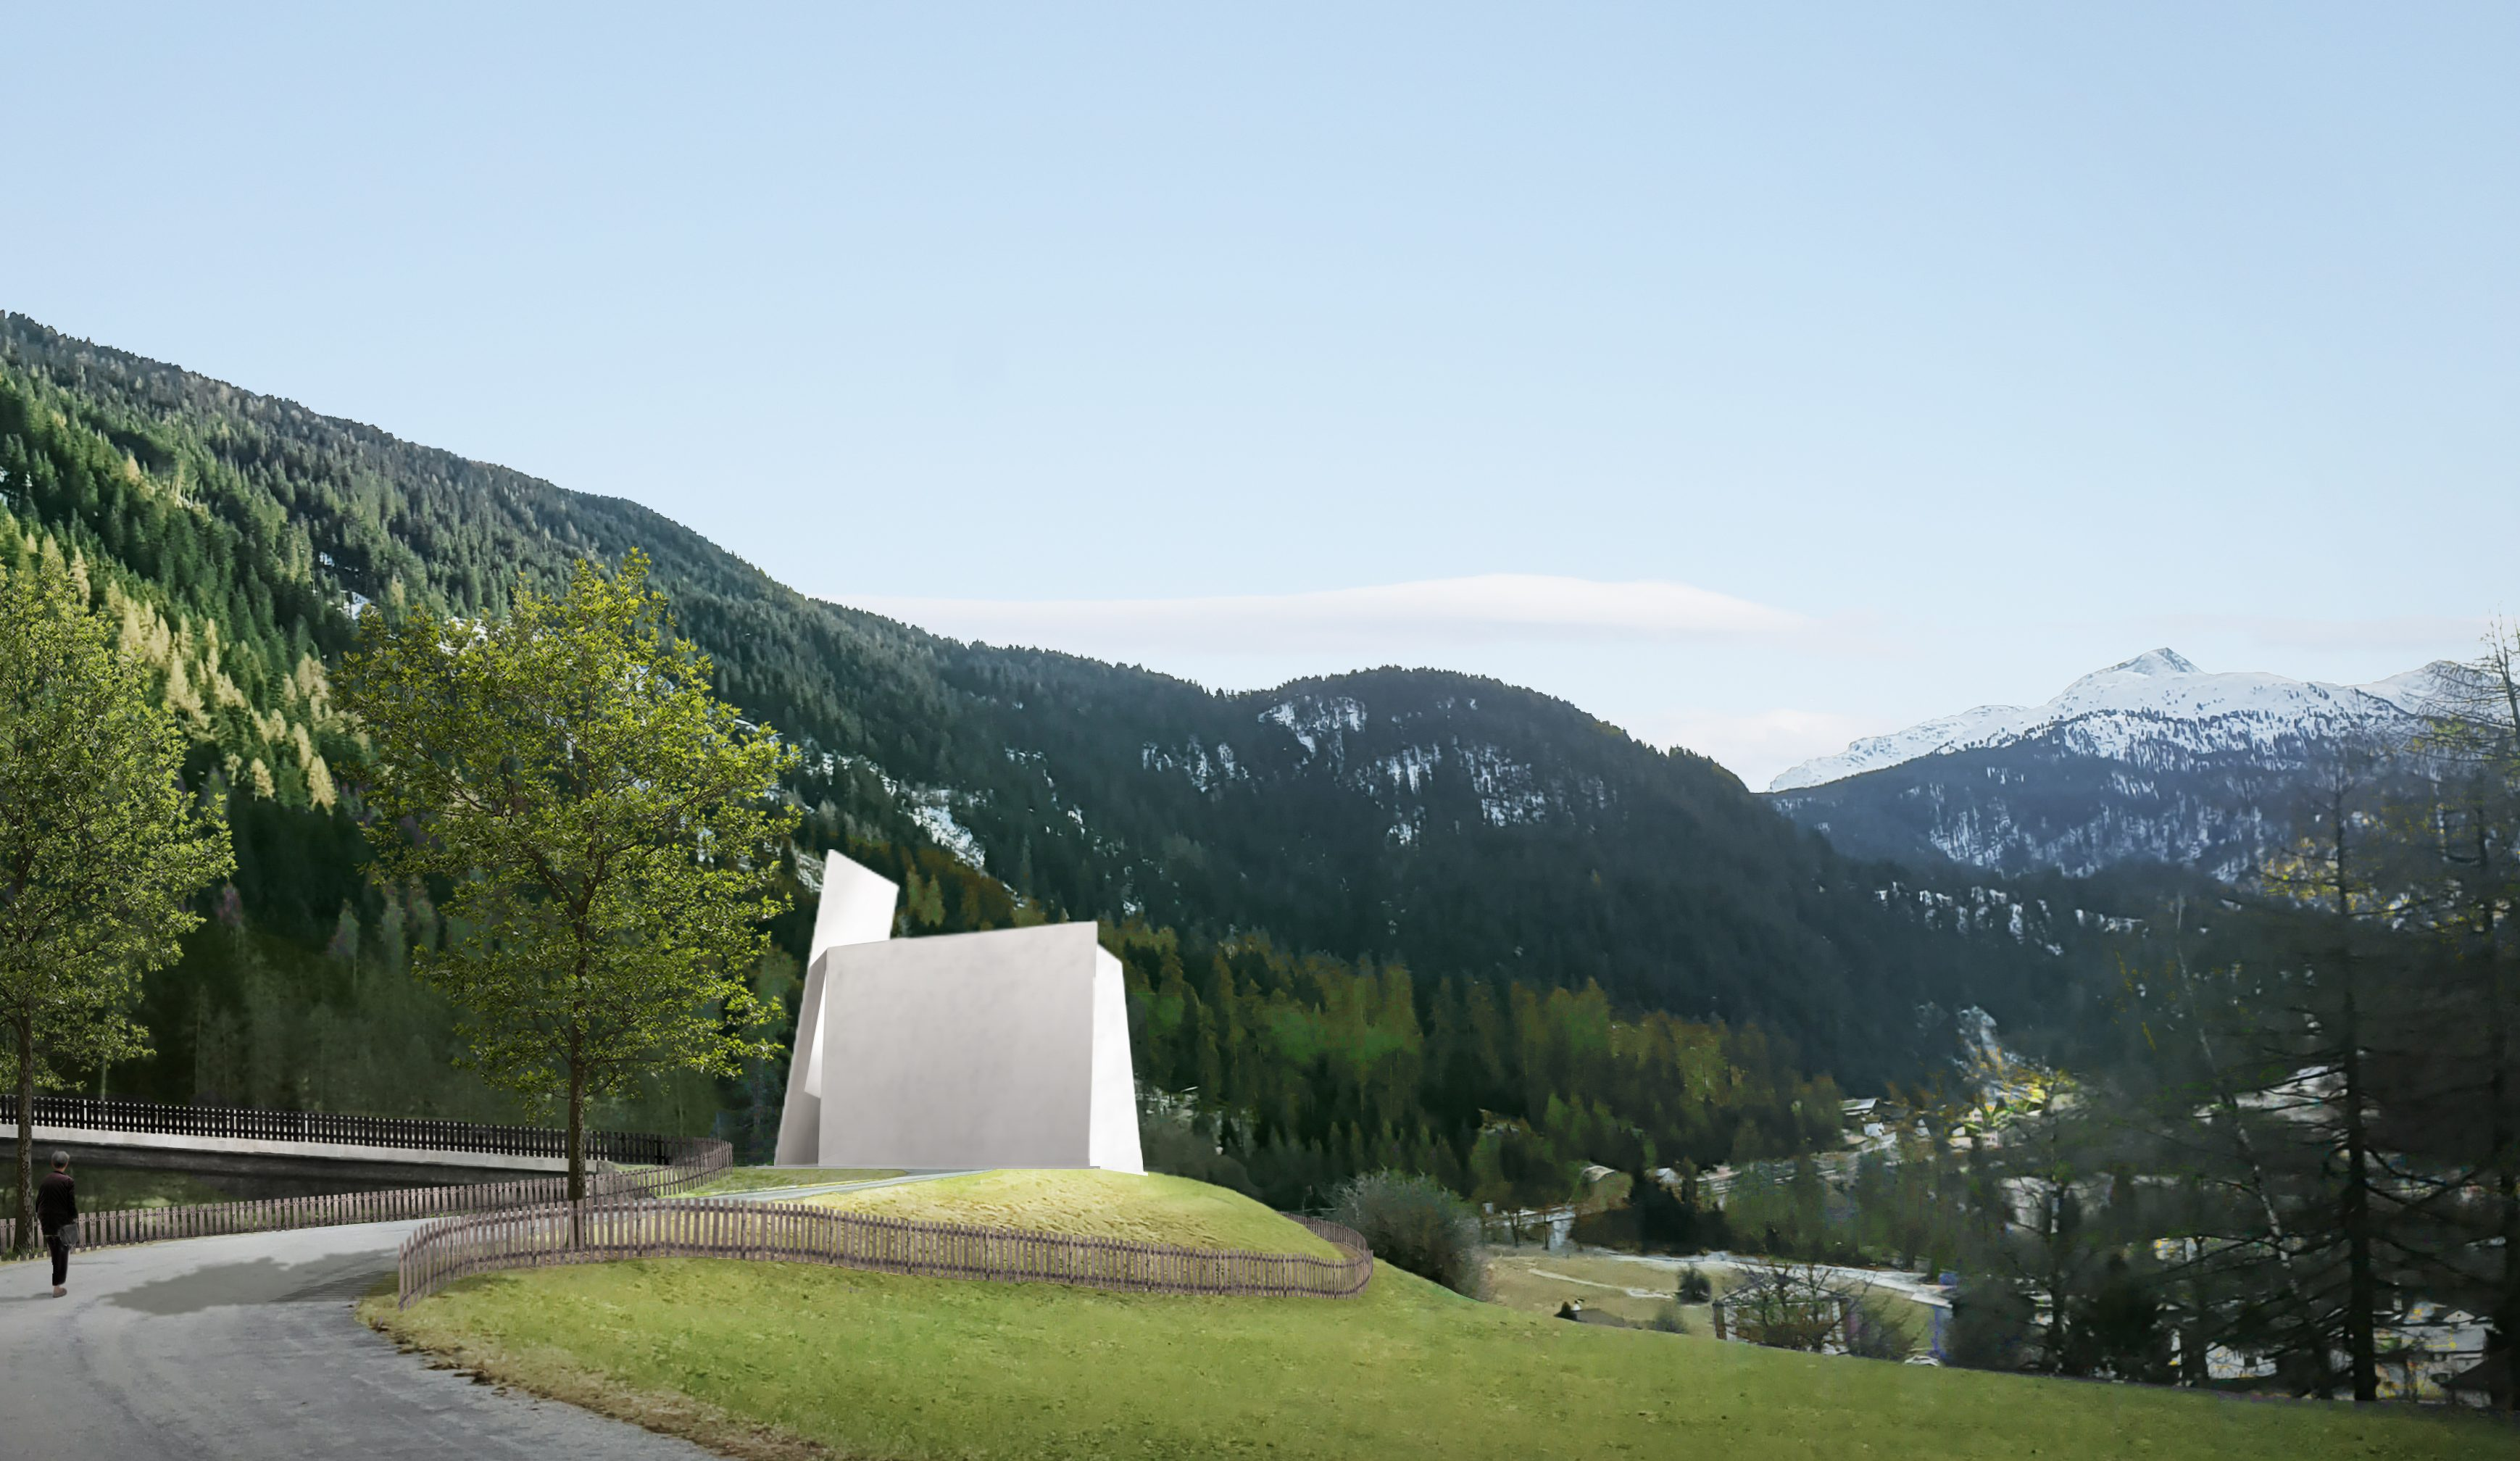 Switzerland's upcoming autobahnkirche will be open to all faiths.